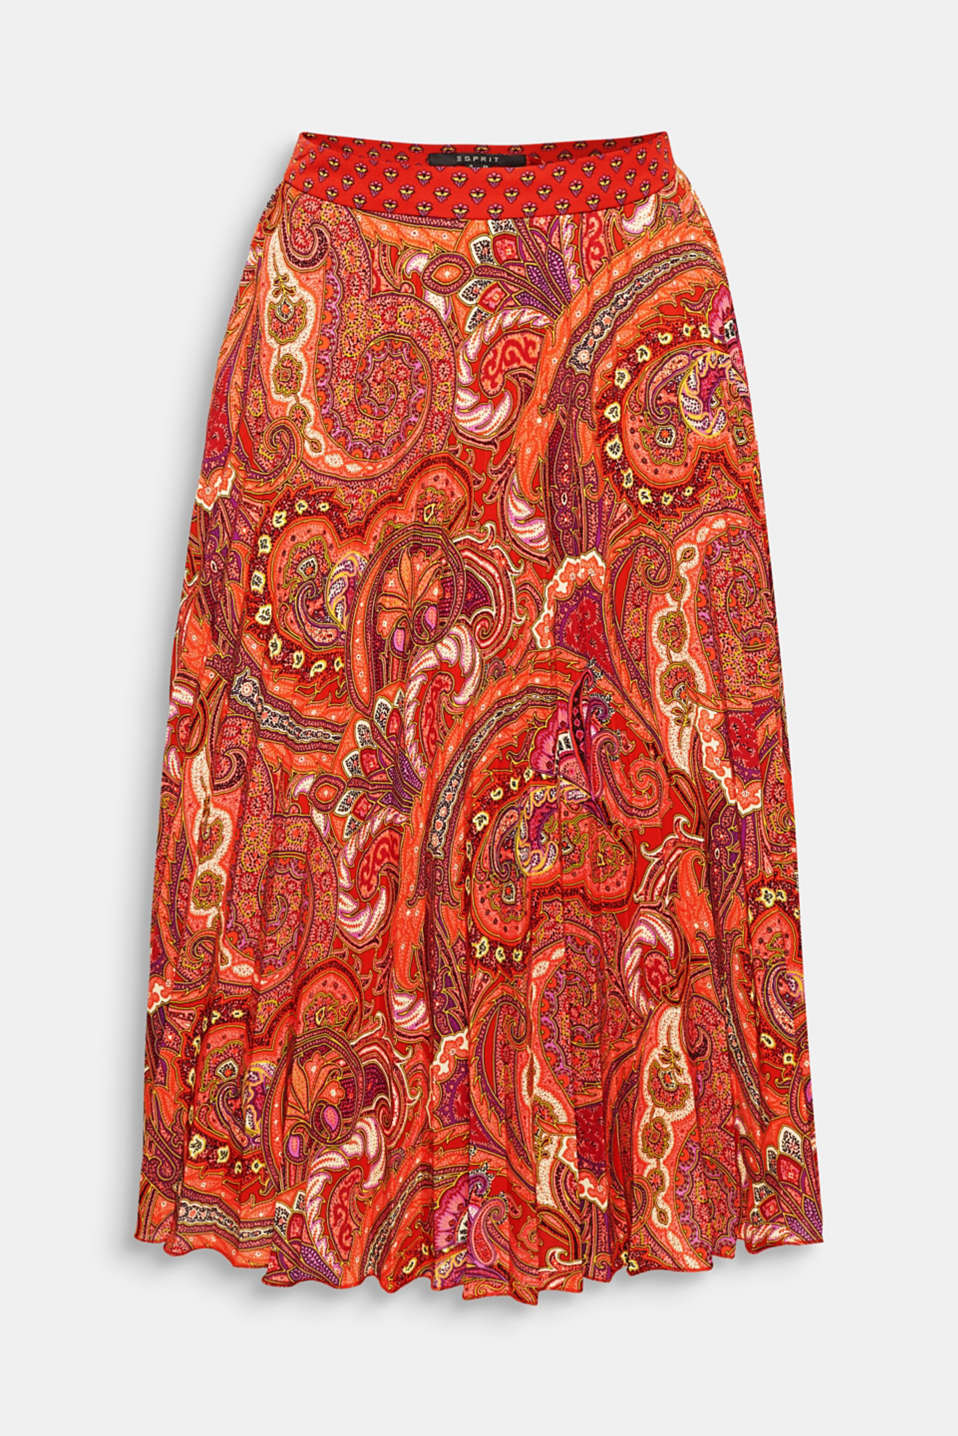 Stylish midi length, elegant paisley print, feminine accordion pleats - this swirling skirt offers everything your heart might desire!